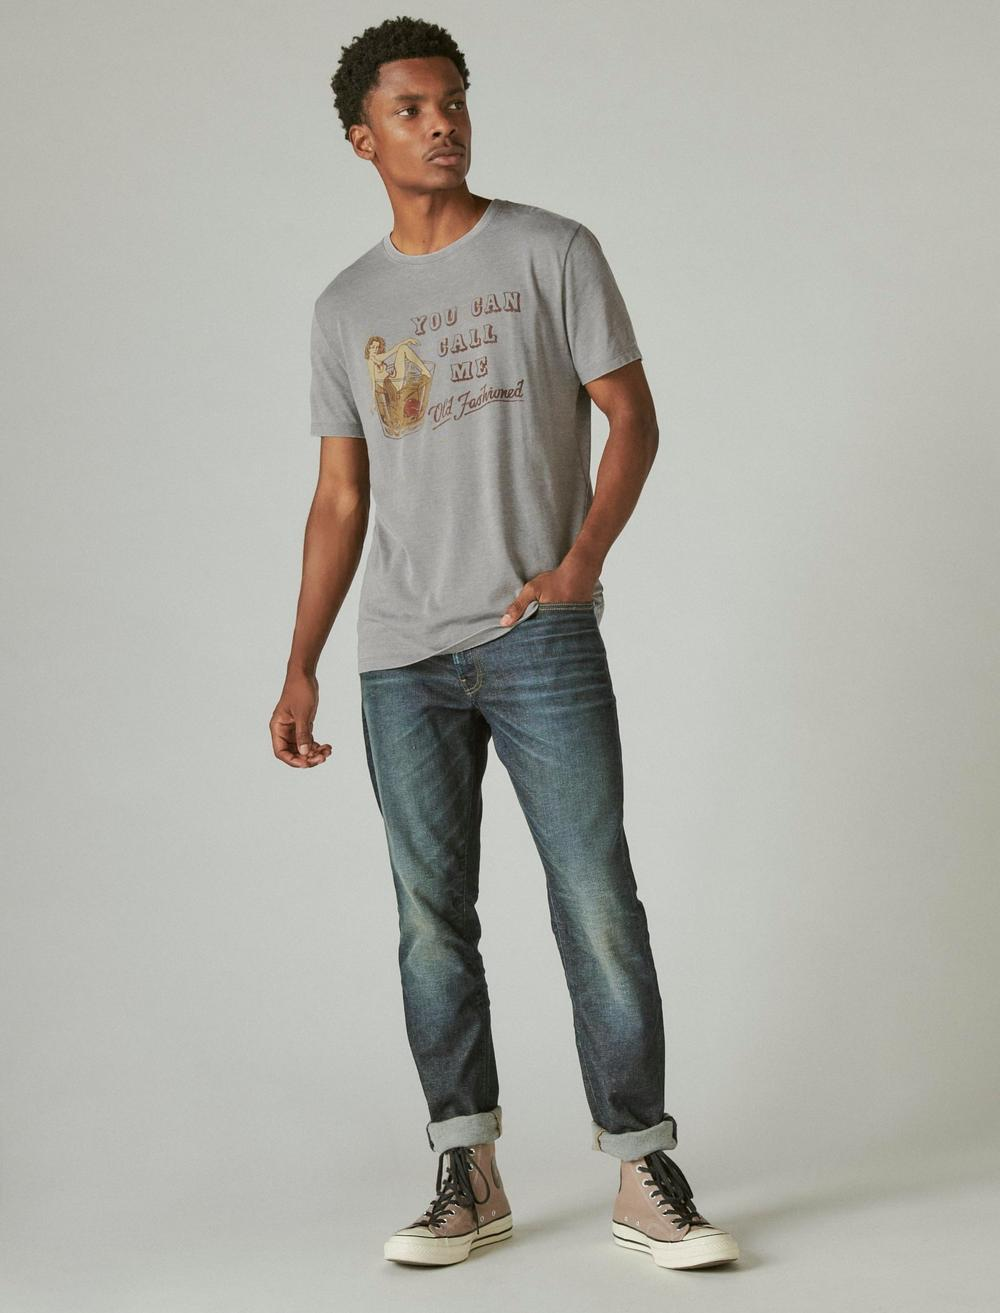 OLD FASHIONED GRAPHIC TEE, image 2